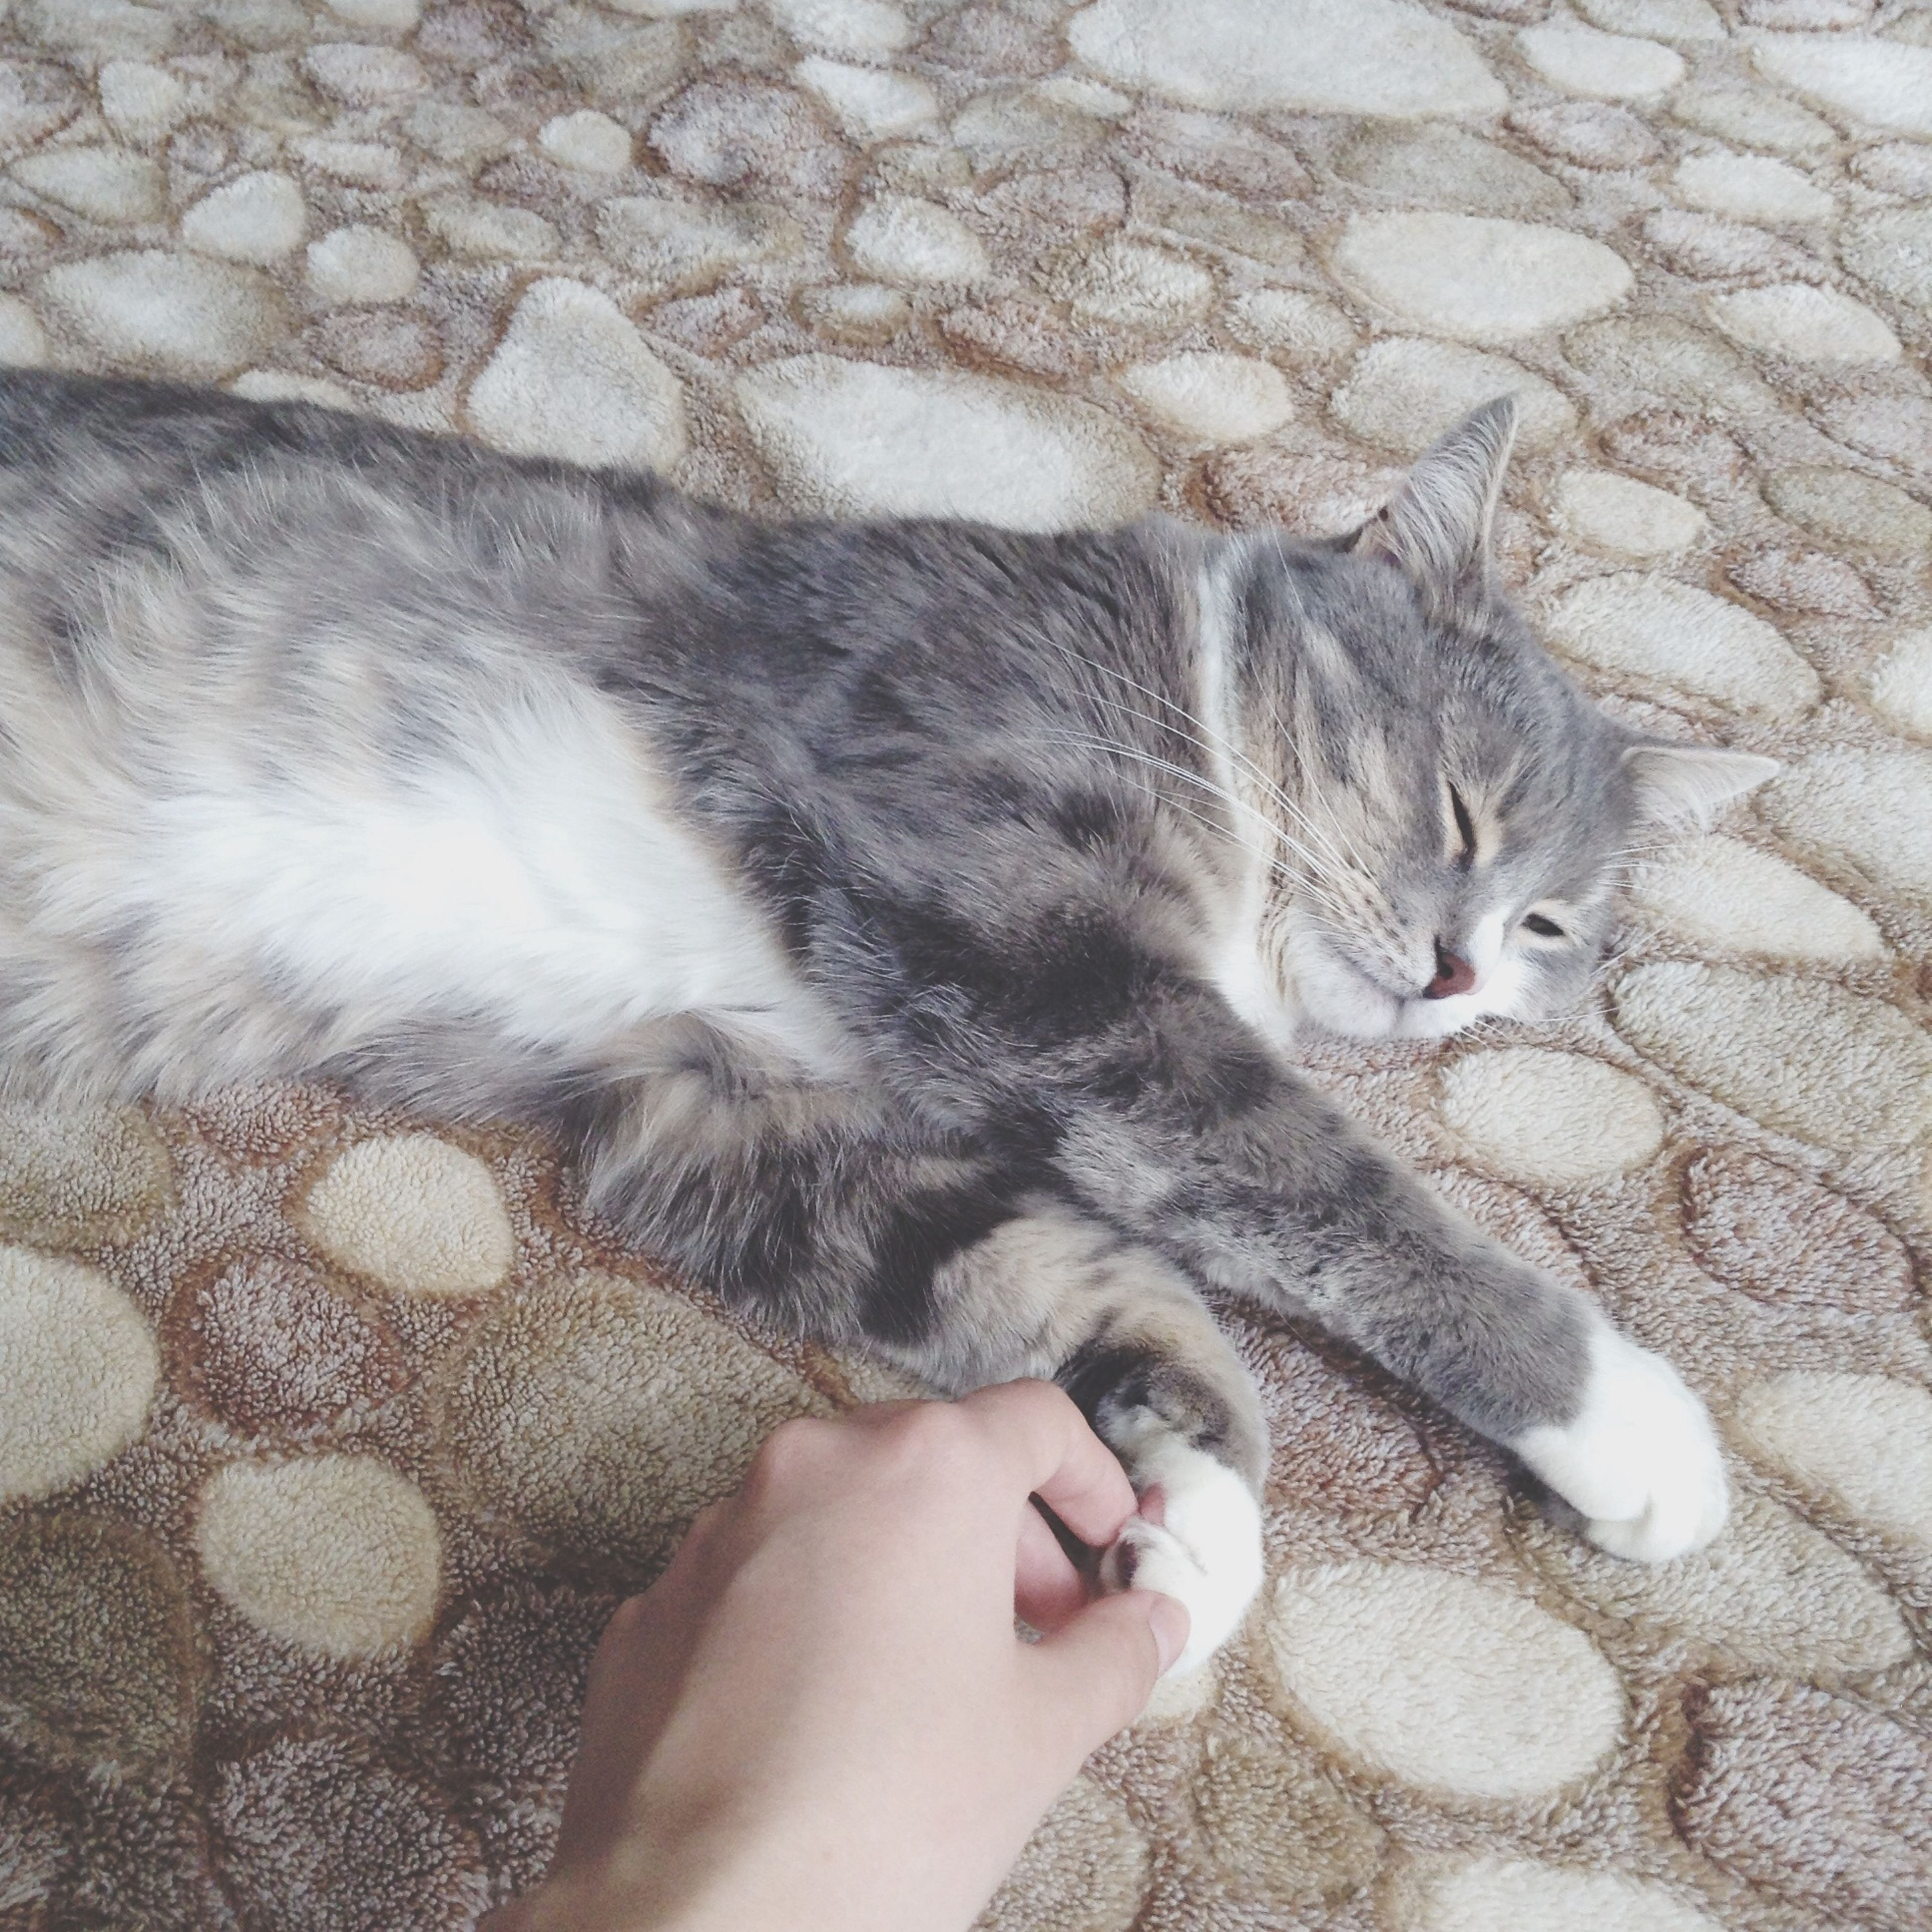 animal themes, domestic cat, pets, one animal, domestic animals, mammal, cat, feline, high angle view, relaxation, lying down, person, resting, whisker, part of, personal perspective, unrecognizable person